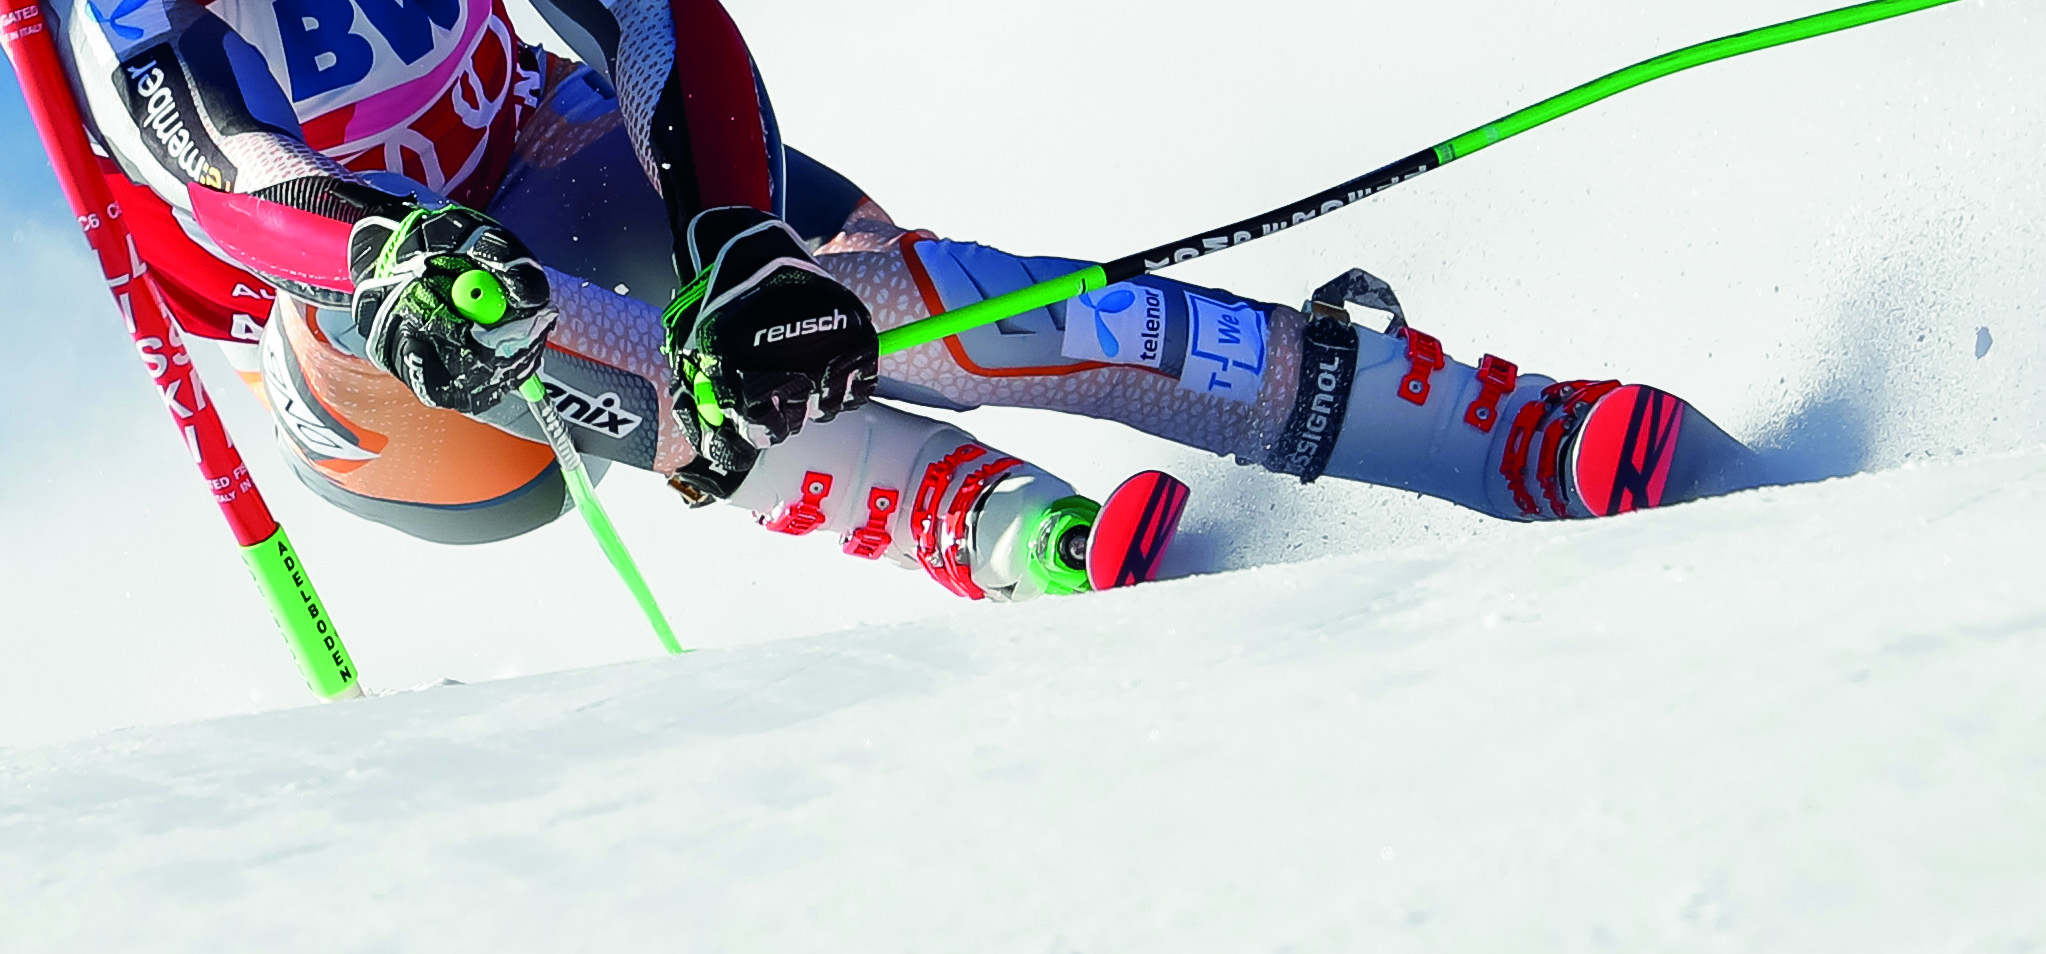 </span></figure> ADELBODEN, SWITZERLAND – JANUARY 11 : Henrik Kristoffersen of Norway competes during the Audi FIS Alpine Ski World Cup Men's Giant Slalom on January 11, 2020 in Adelboden Switzerland. (Photo by Alexis Boichard/Agence Zoom)